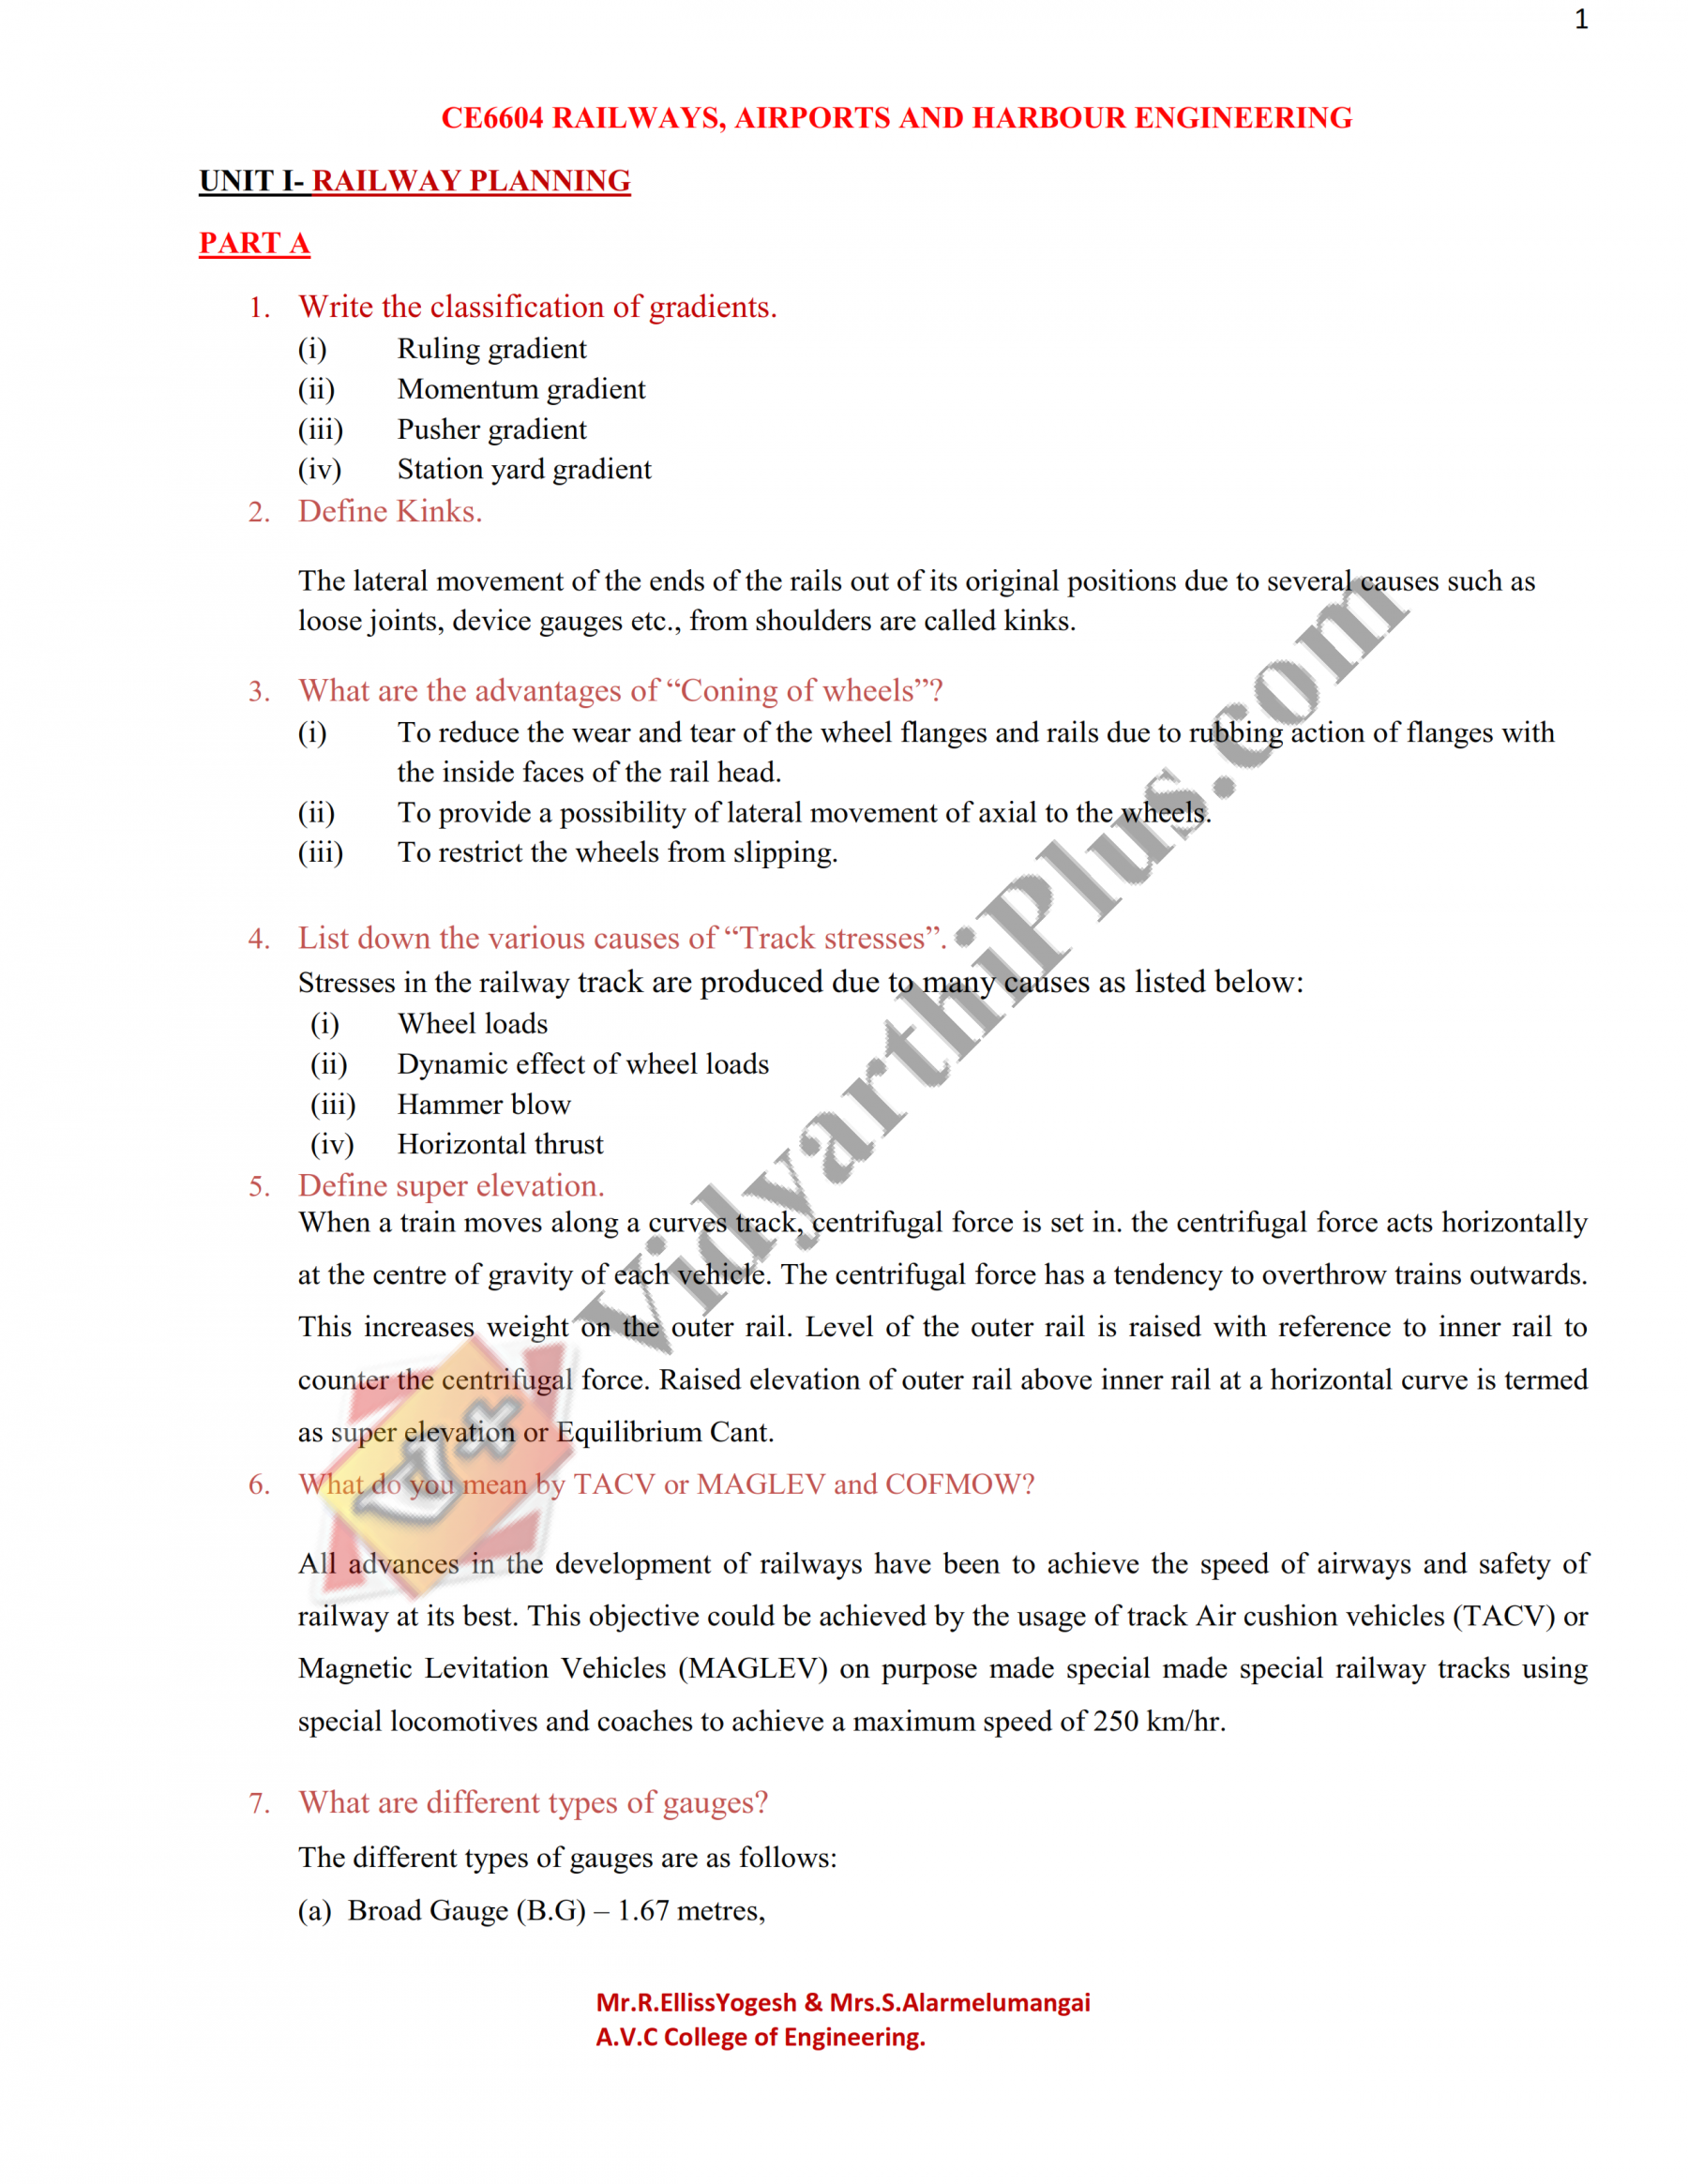 Railways Airports And Harbour Engineering Hand Written